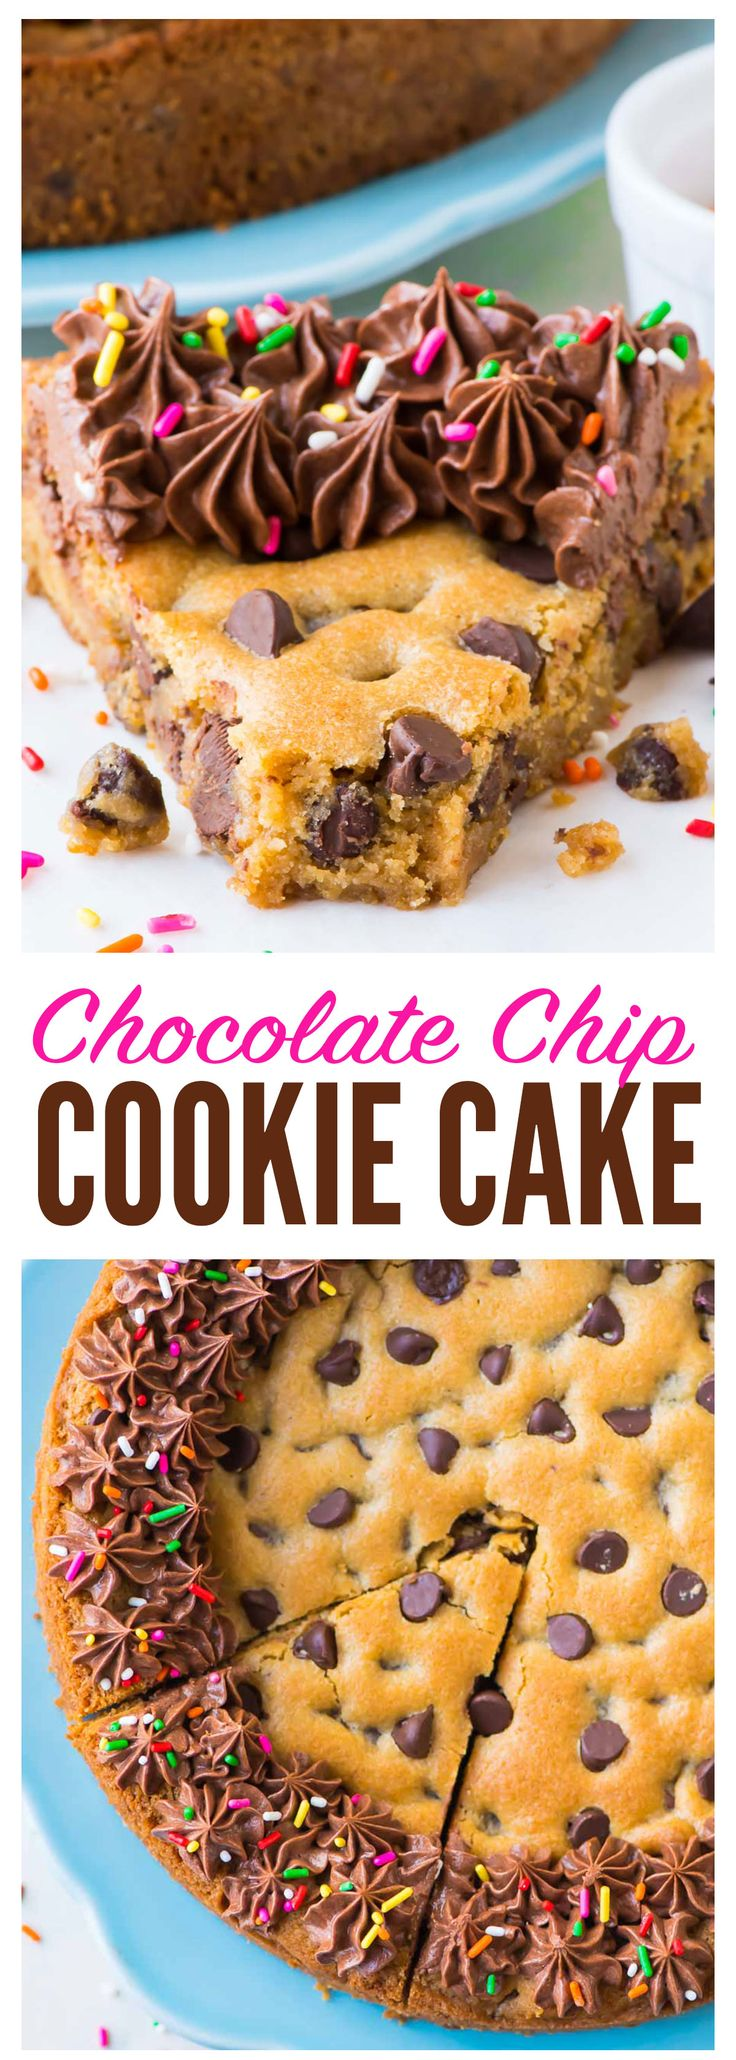 Ultra soft, ultra chewy Chocolate Chip Cookie Cake from scratch! The BEST recipe. EASY and the rich chocolate fudge frosting tastes incredible. Decorate for a special homemade birthday dessert or just enjoy a giant slice.